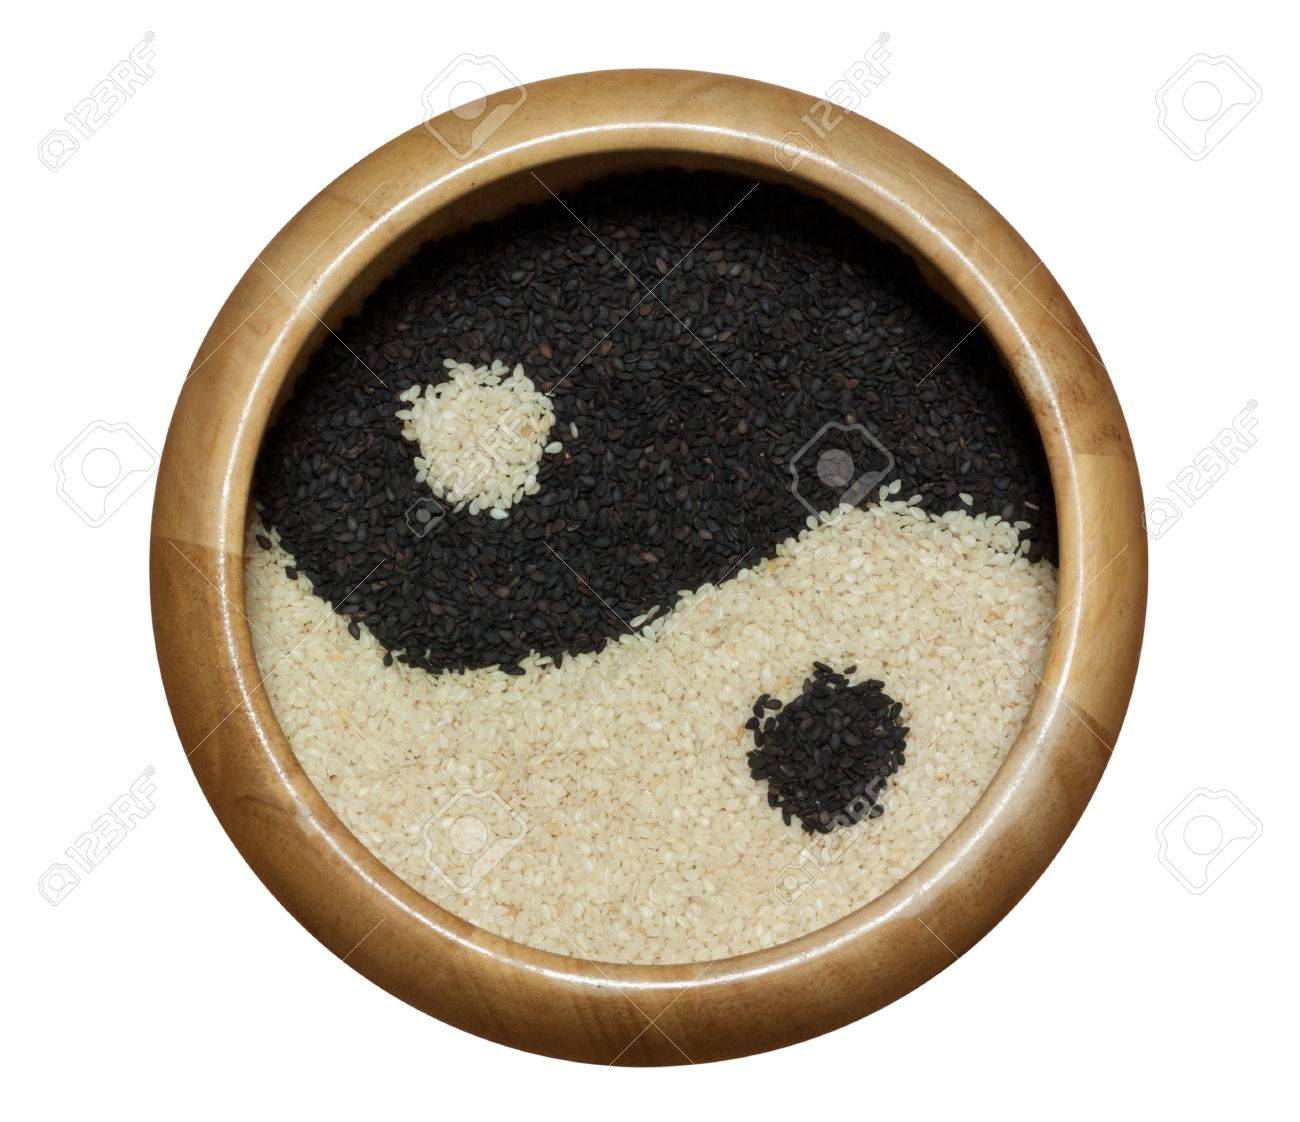 yin yang black and white sesame in wooden bowl isolated on white